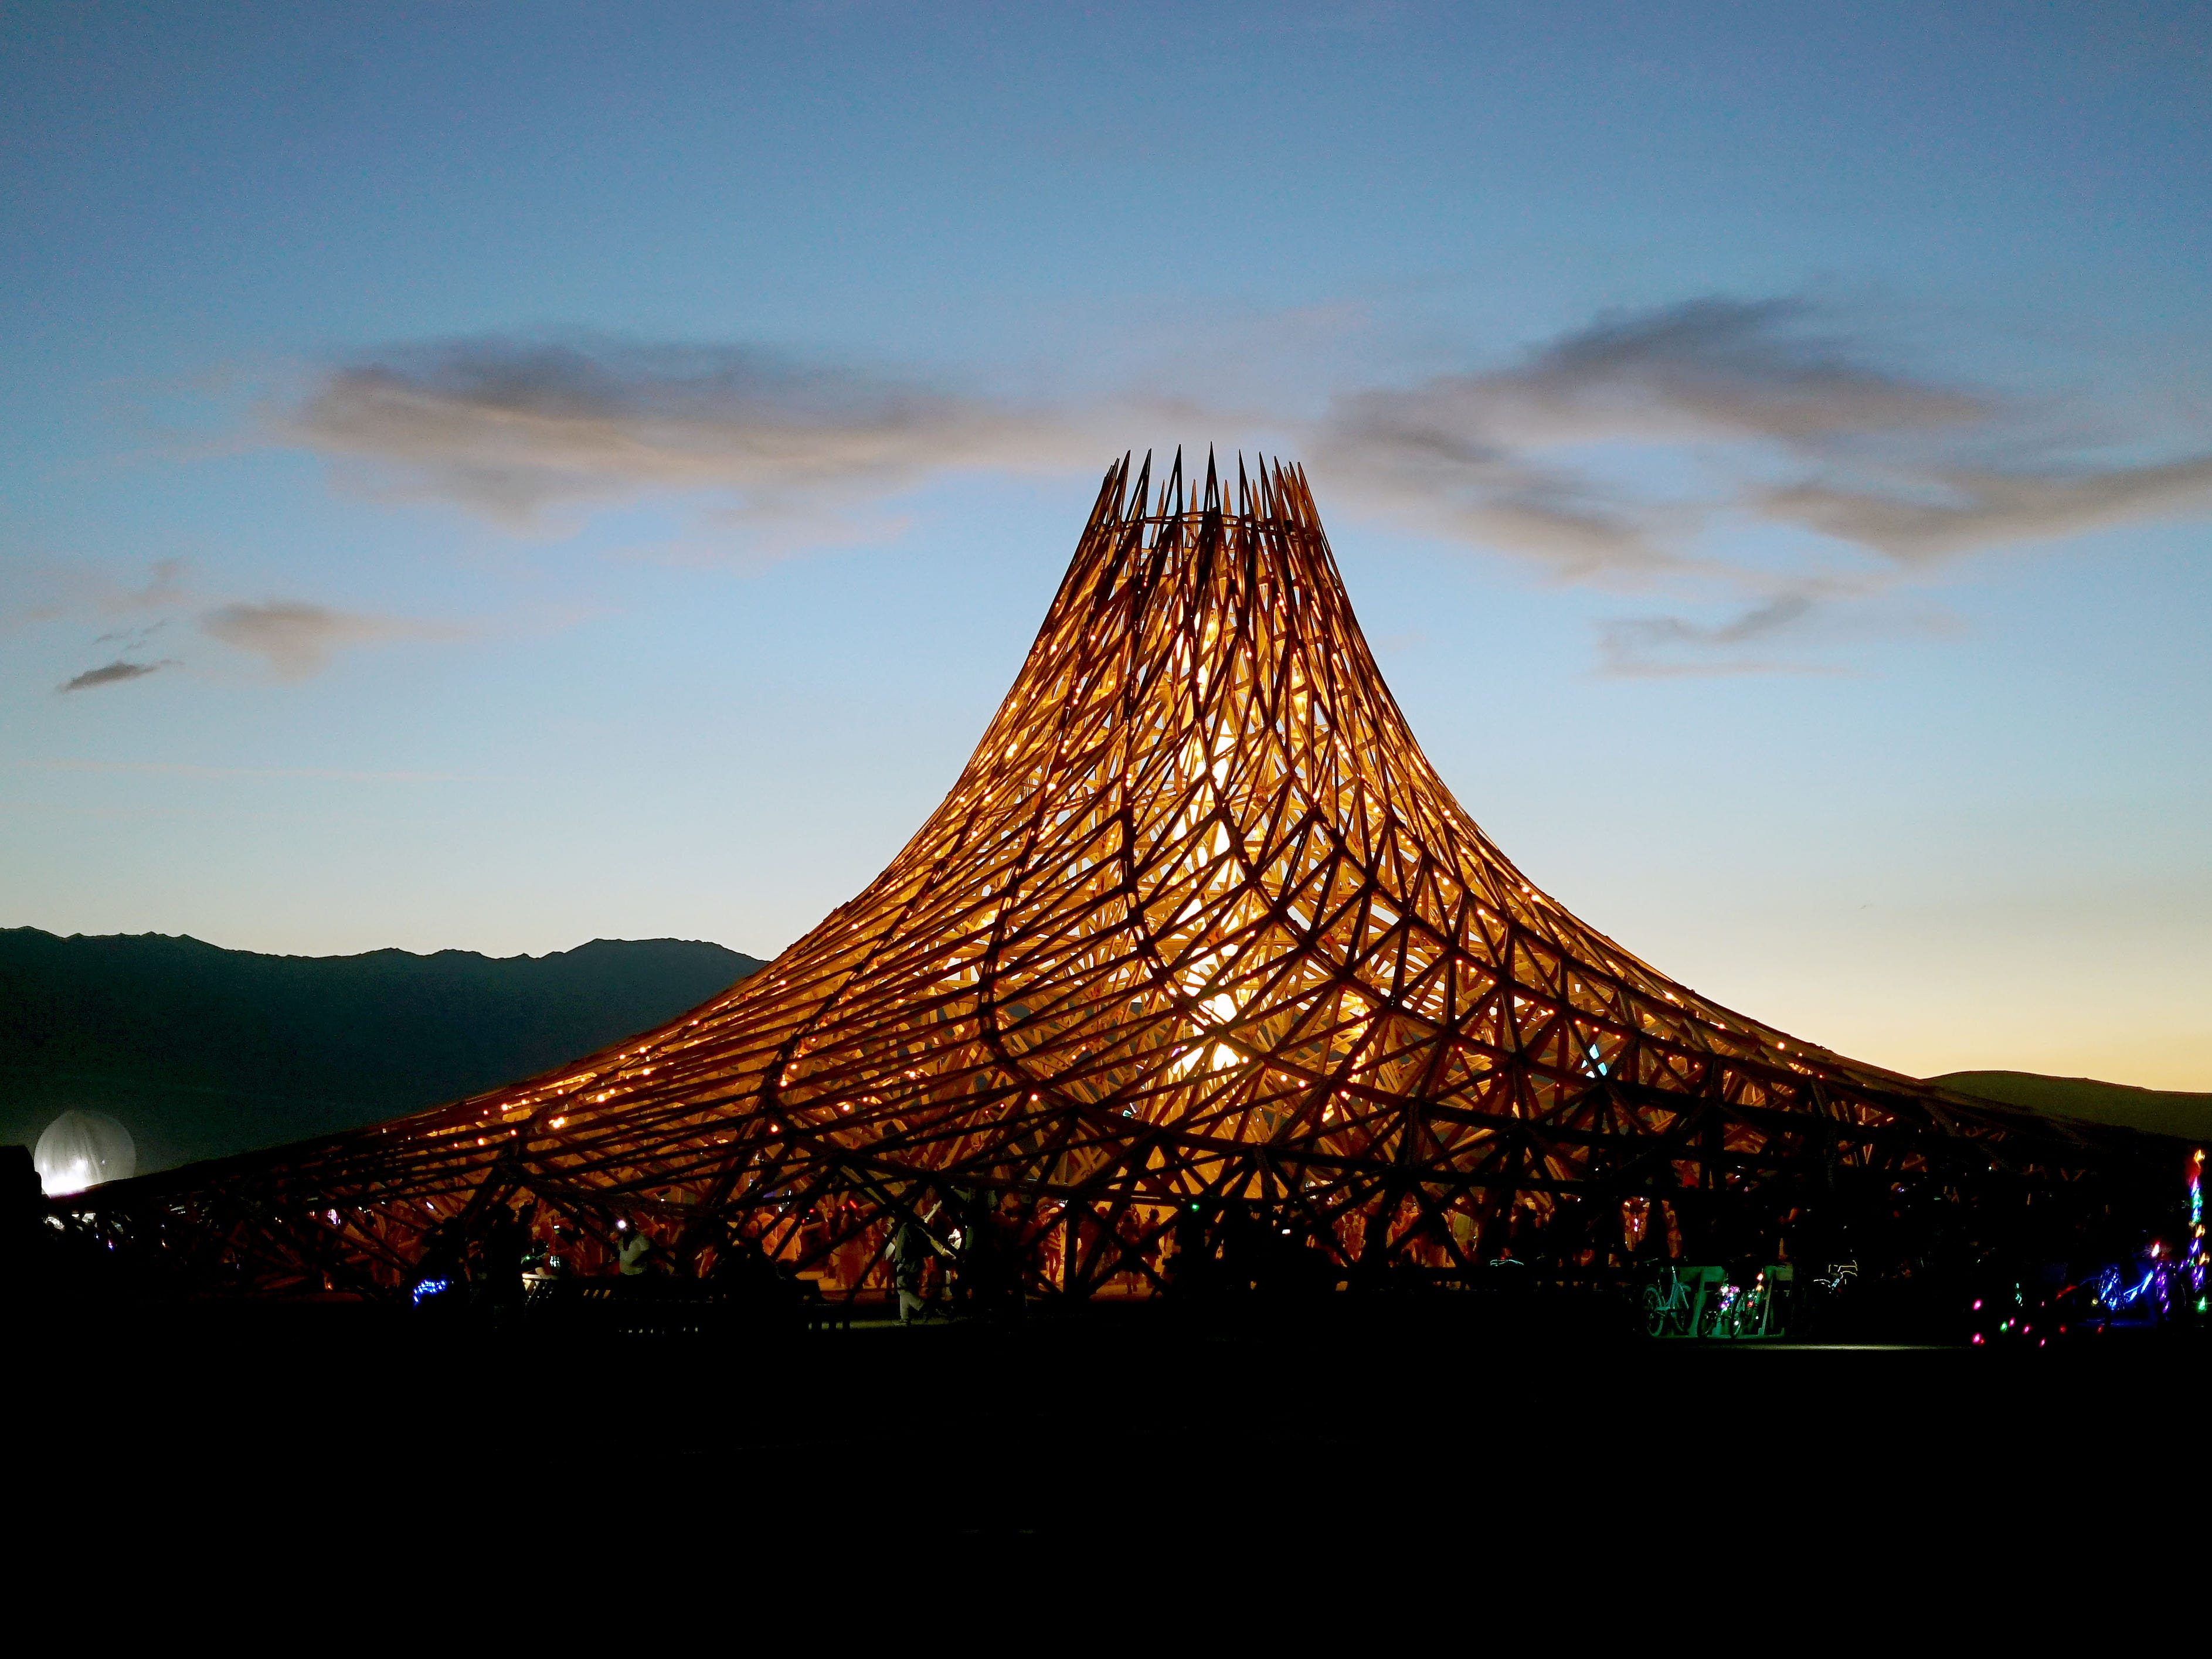 The finally completed Temple at Burning Man takes its cues from fractals and 3-D printing to offer an unusual shape and construction style, which took longer that many attendees expected. The building with be torched and burned to ashes on Sunday night.